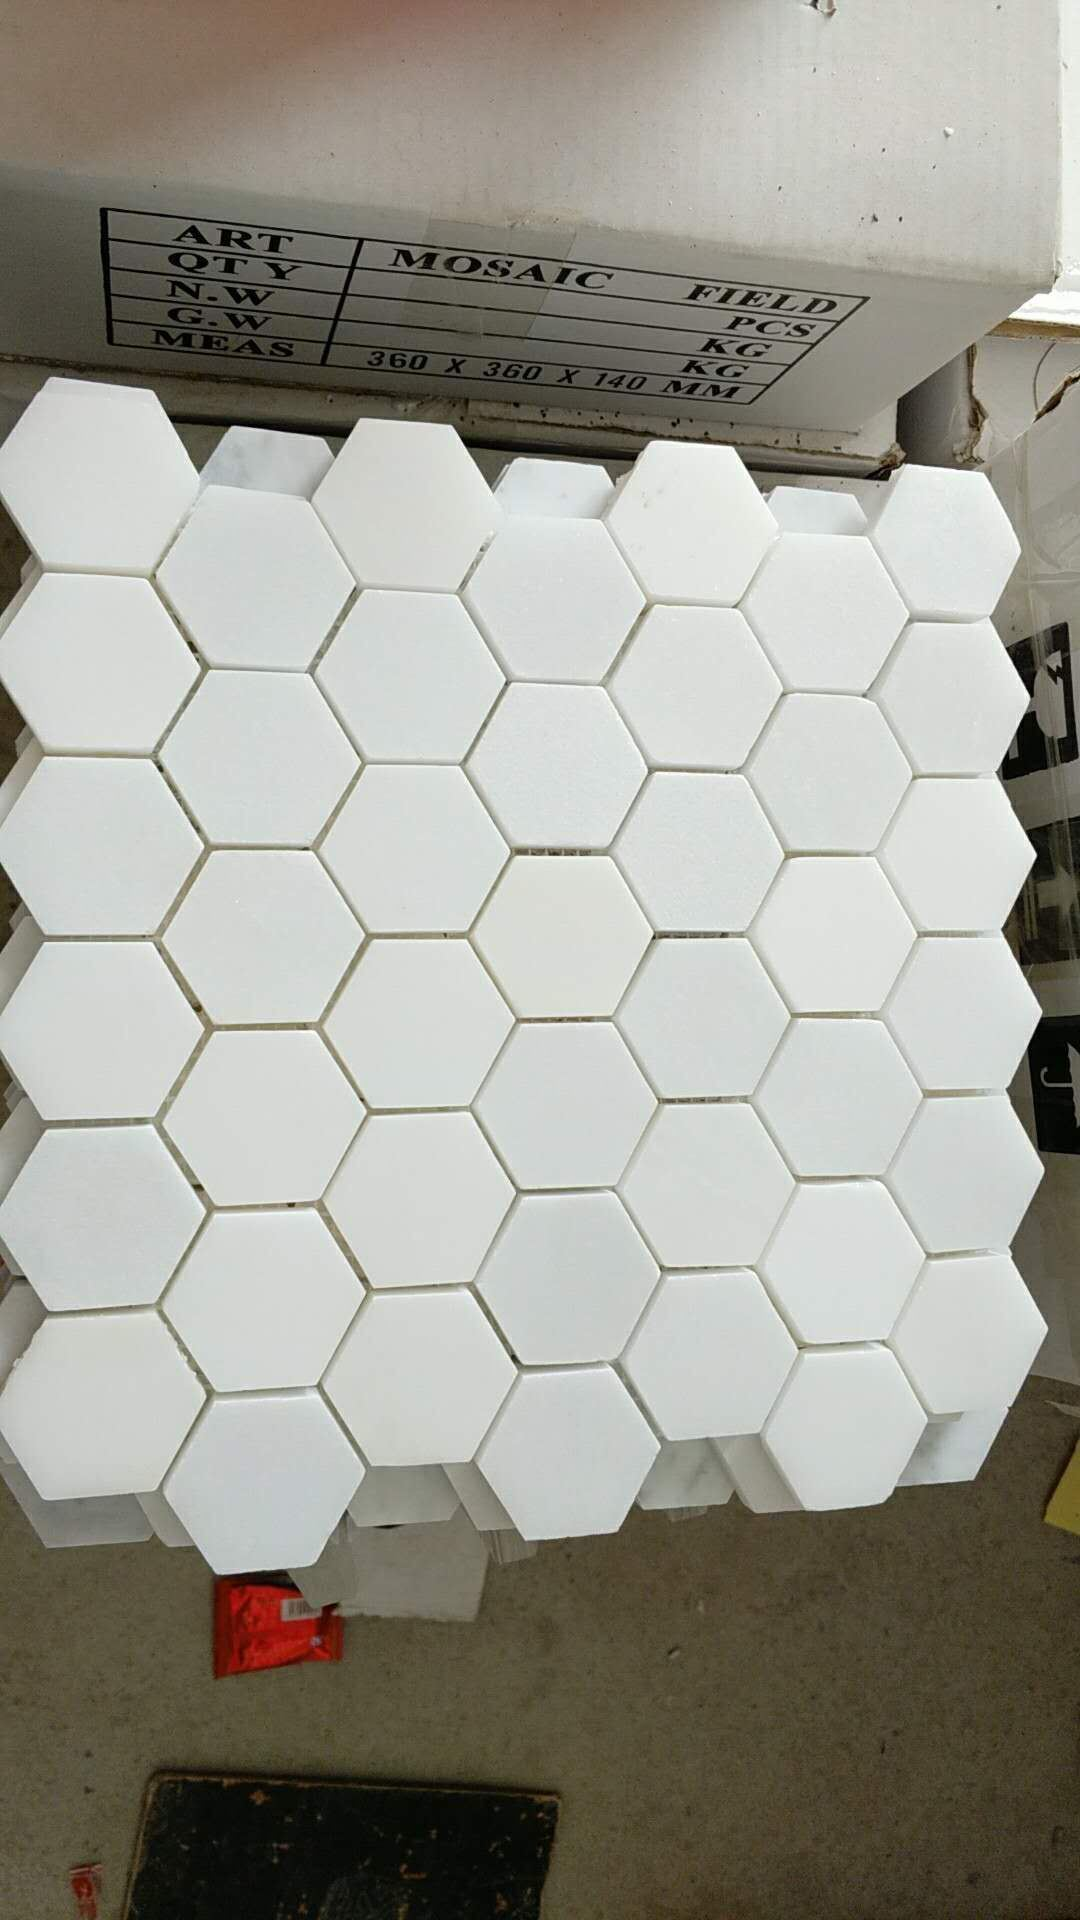 China Pure White Marble Mosaic Thassos White Mosaic Hexagon Mosaic Tile Floor Wall For Bathroom Kitchen Backsplash Wall Pool Decoration Mosaic Tile China Mosaic Marble Mosaic